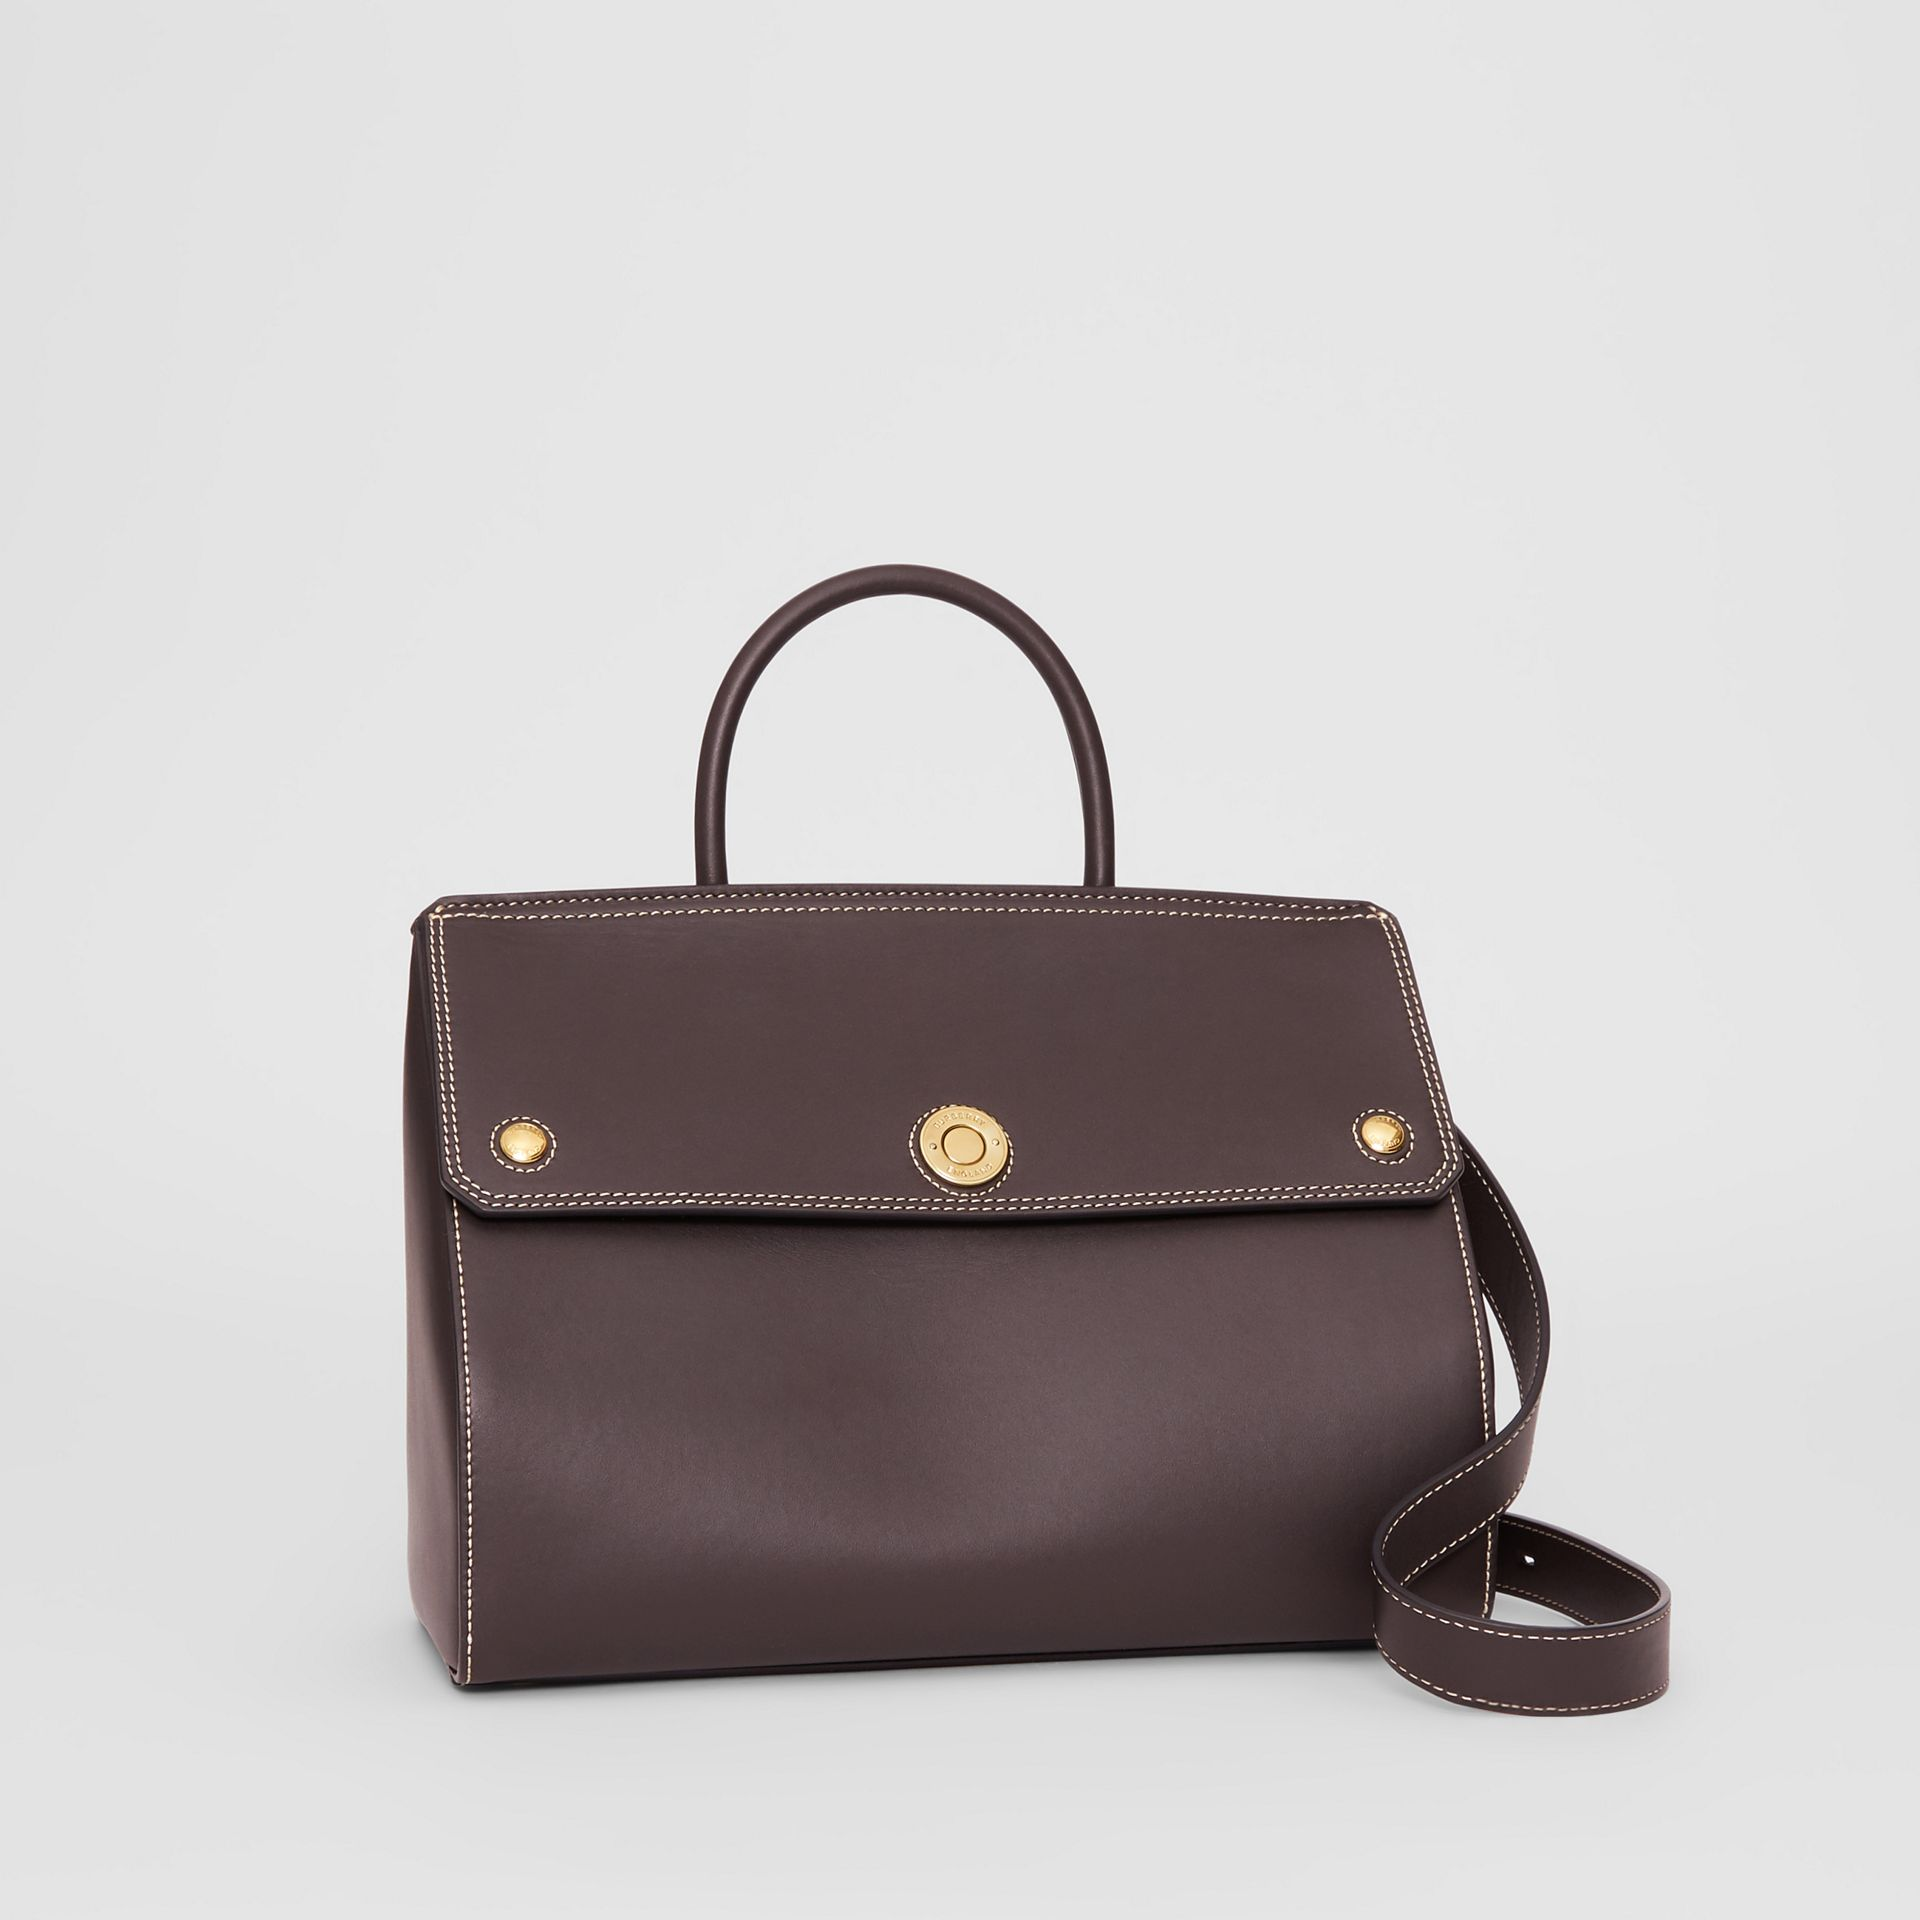 Small Leather Elizabeth Bag in Coffee - Women | Burberry - gallery image 4